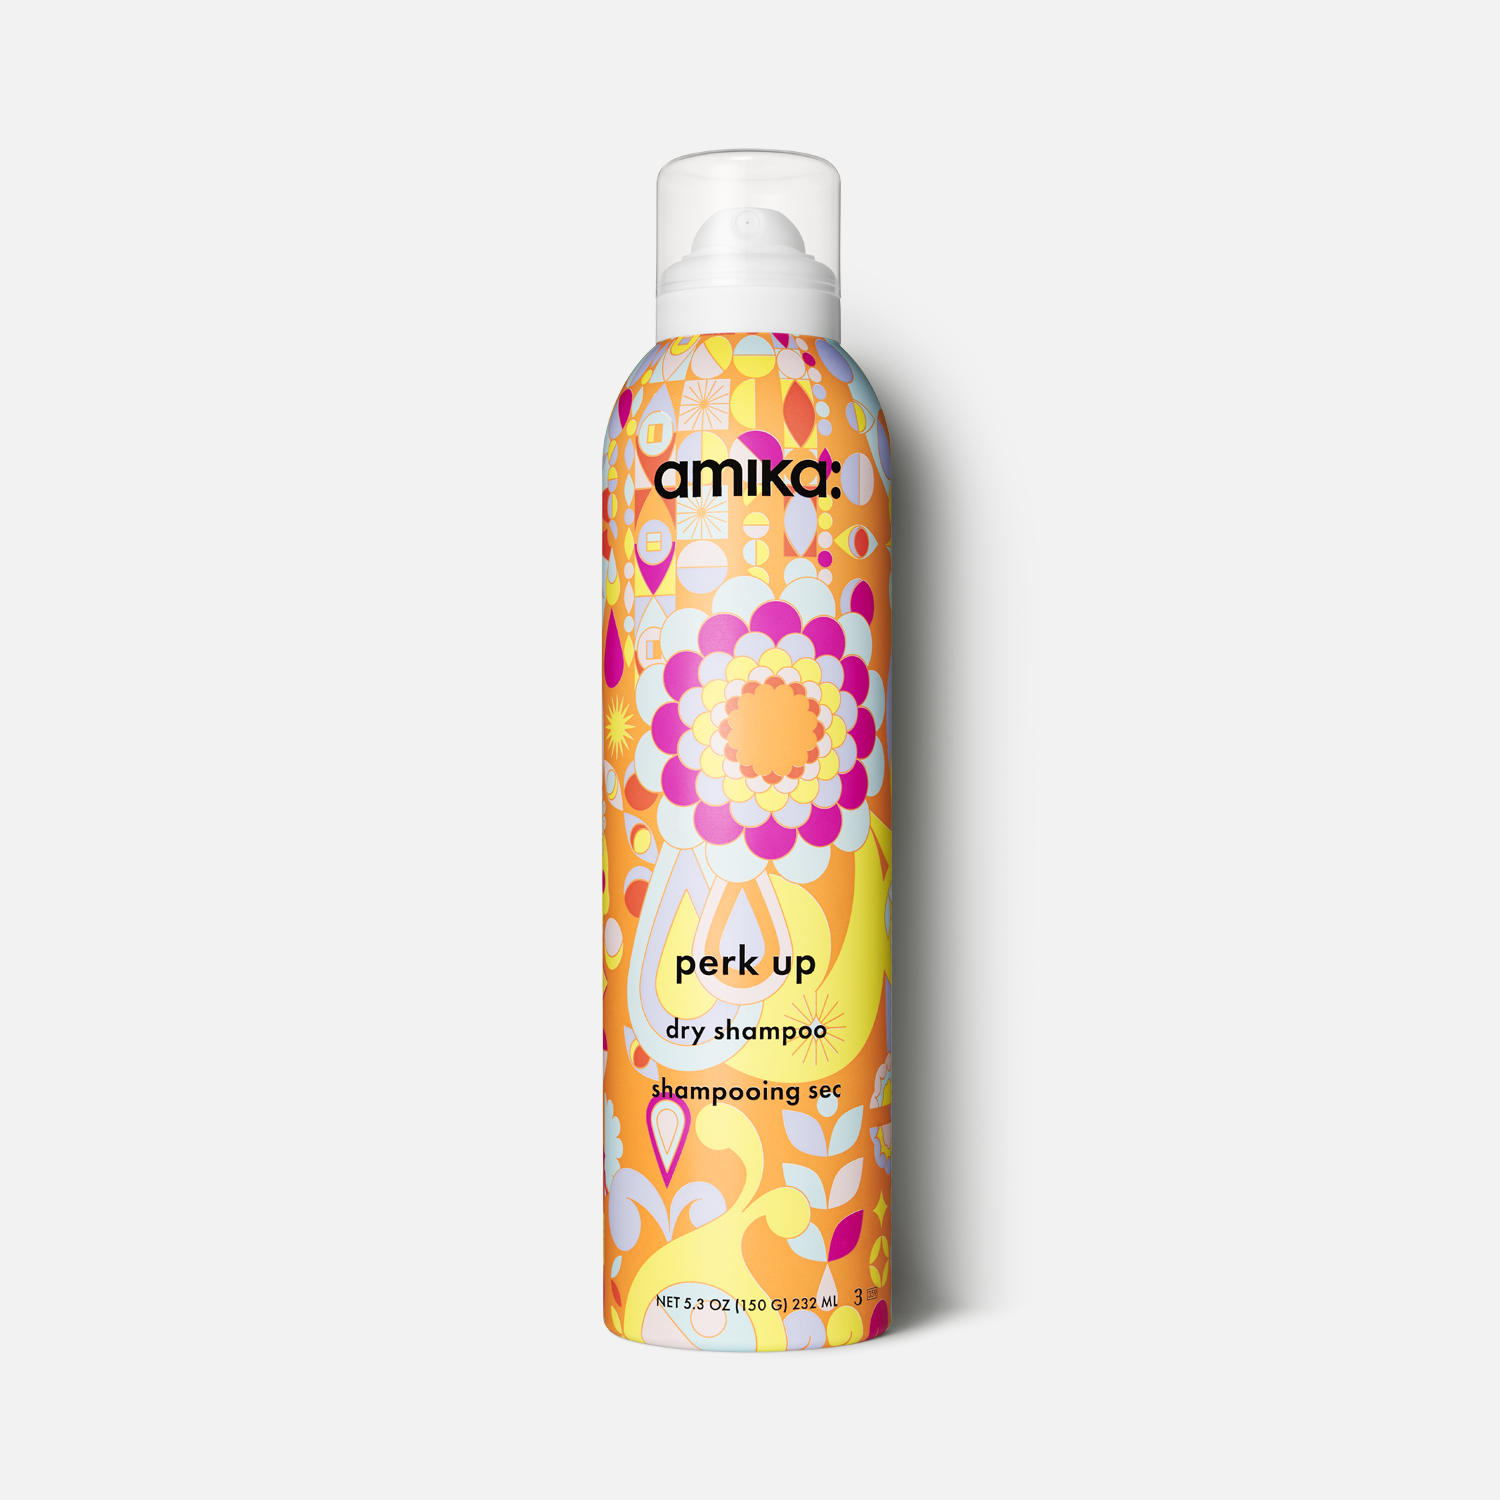 money makers set perk up dry shampoo, fluxus touchable hair spray, + the shield anti-humidity spray | amika